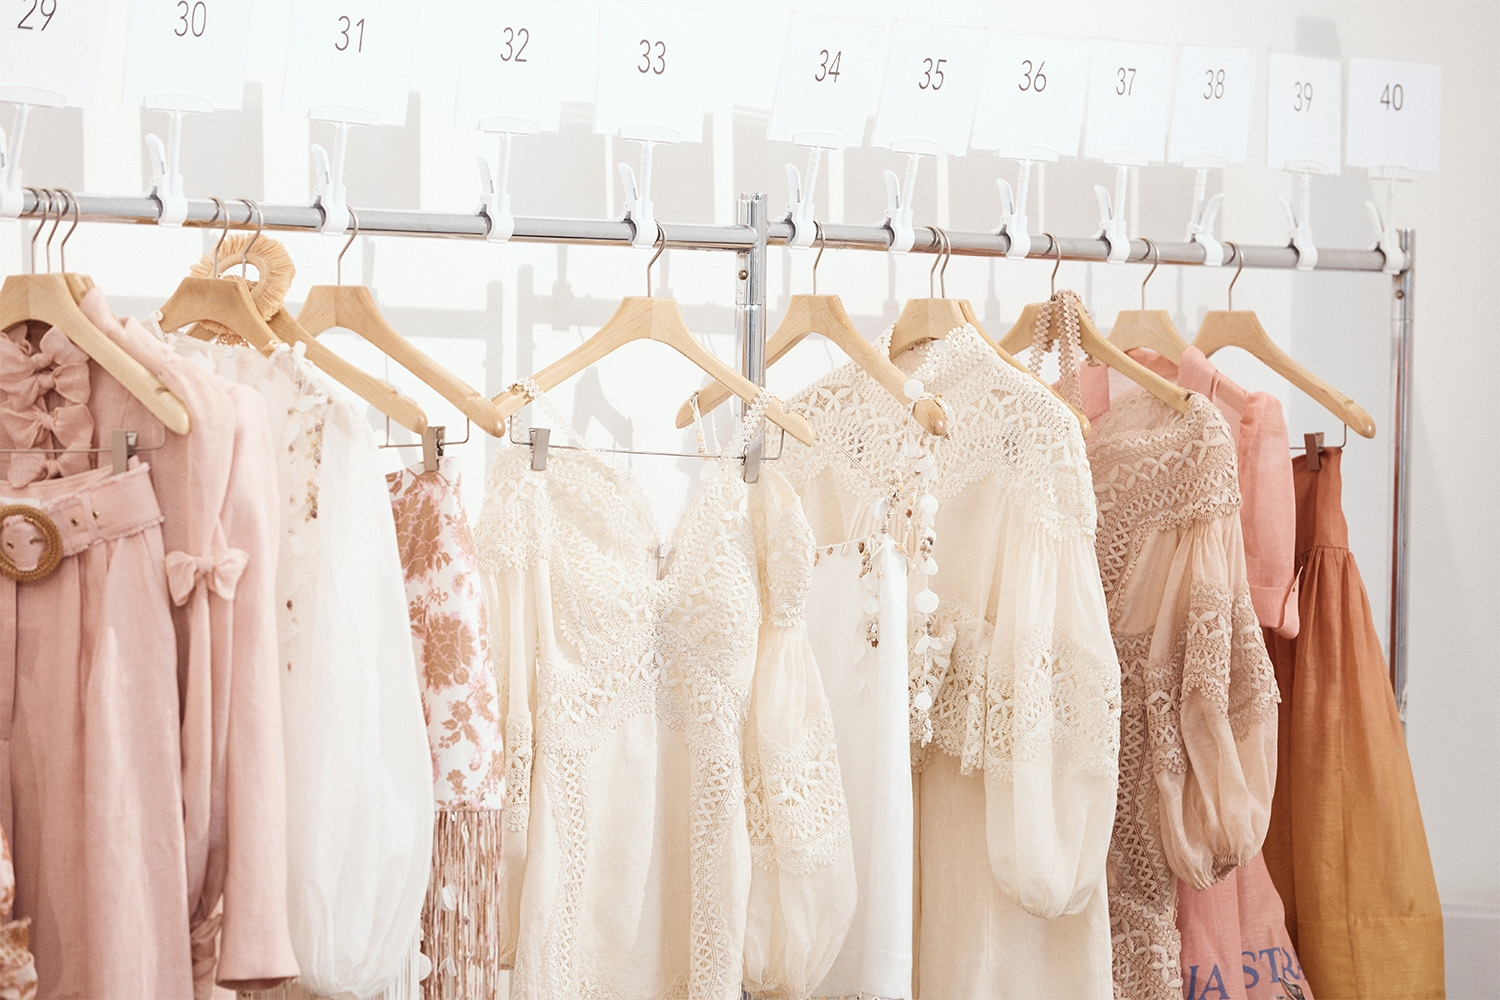 IN THE STUDIO WITH RESORT READY TO WEAR 2022, THE POSTCARD